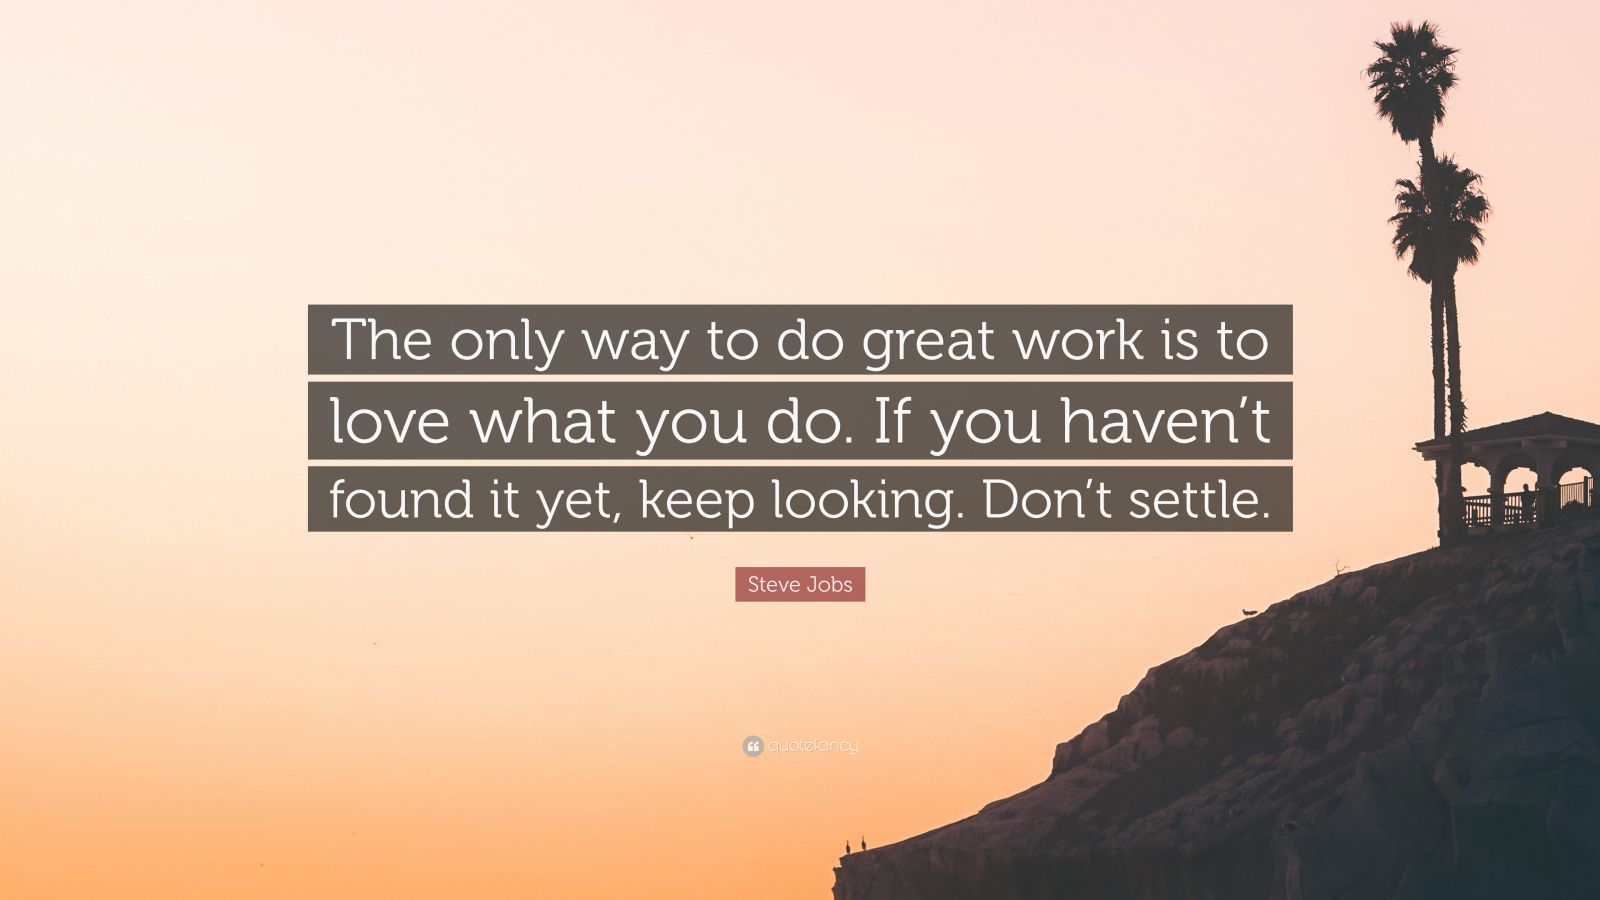 Go Get It Girl Laptop Wallpaper Steve Jobs Quote The Only Way To Do Great Work Is To